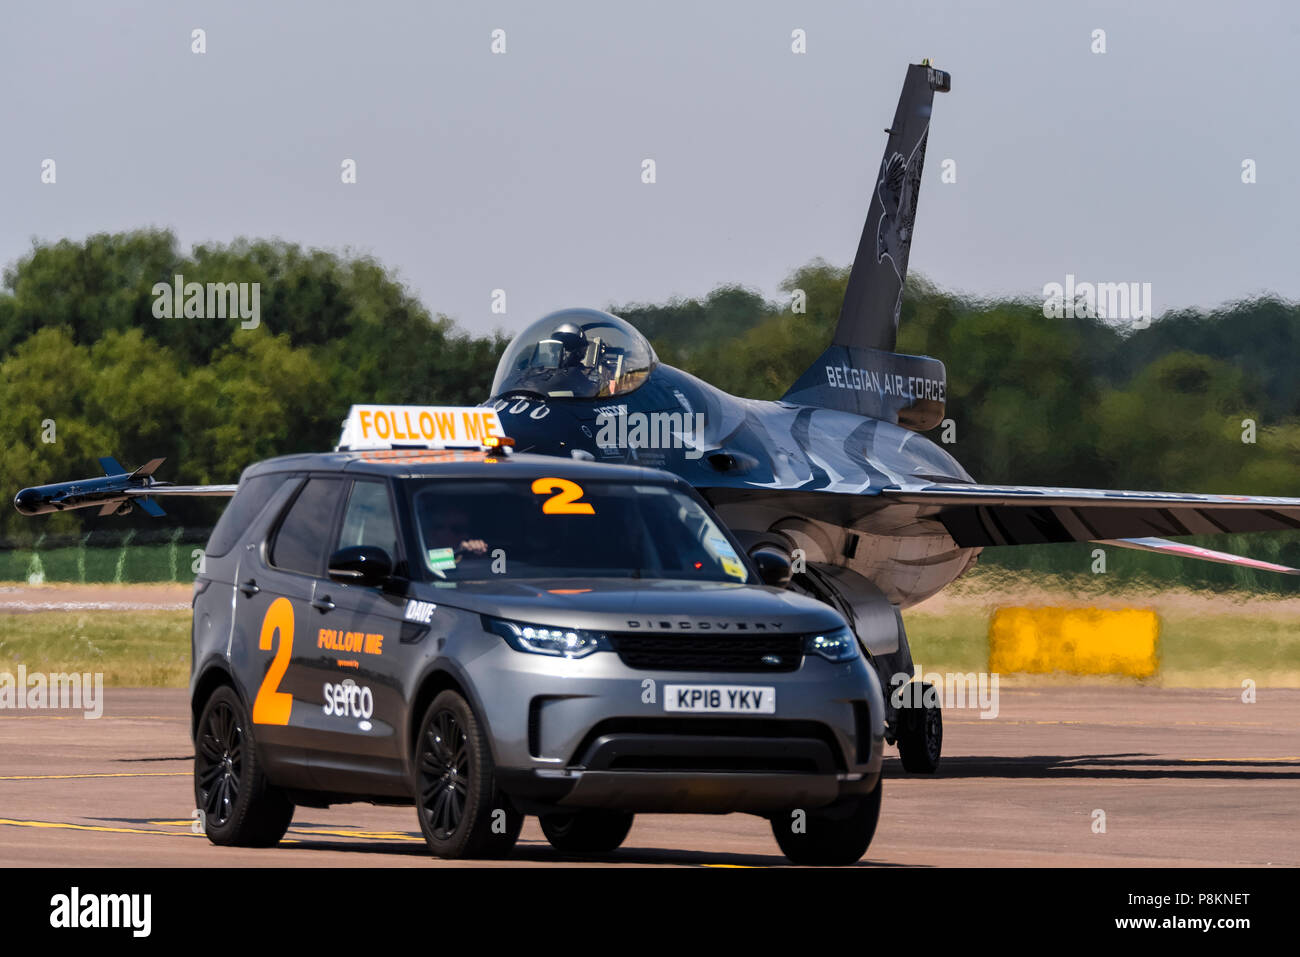 ba5f0c67 Captain In The Royal Air Force Stock Photos & Captain In The Royal ...